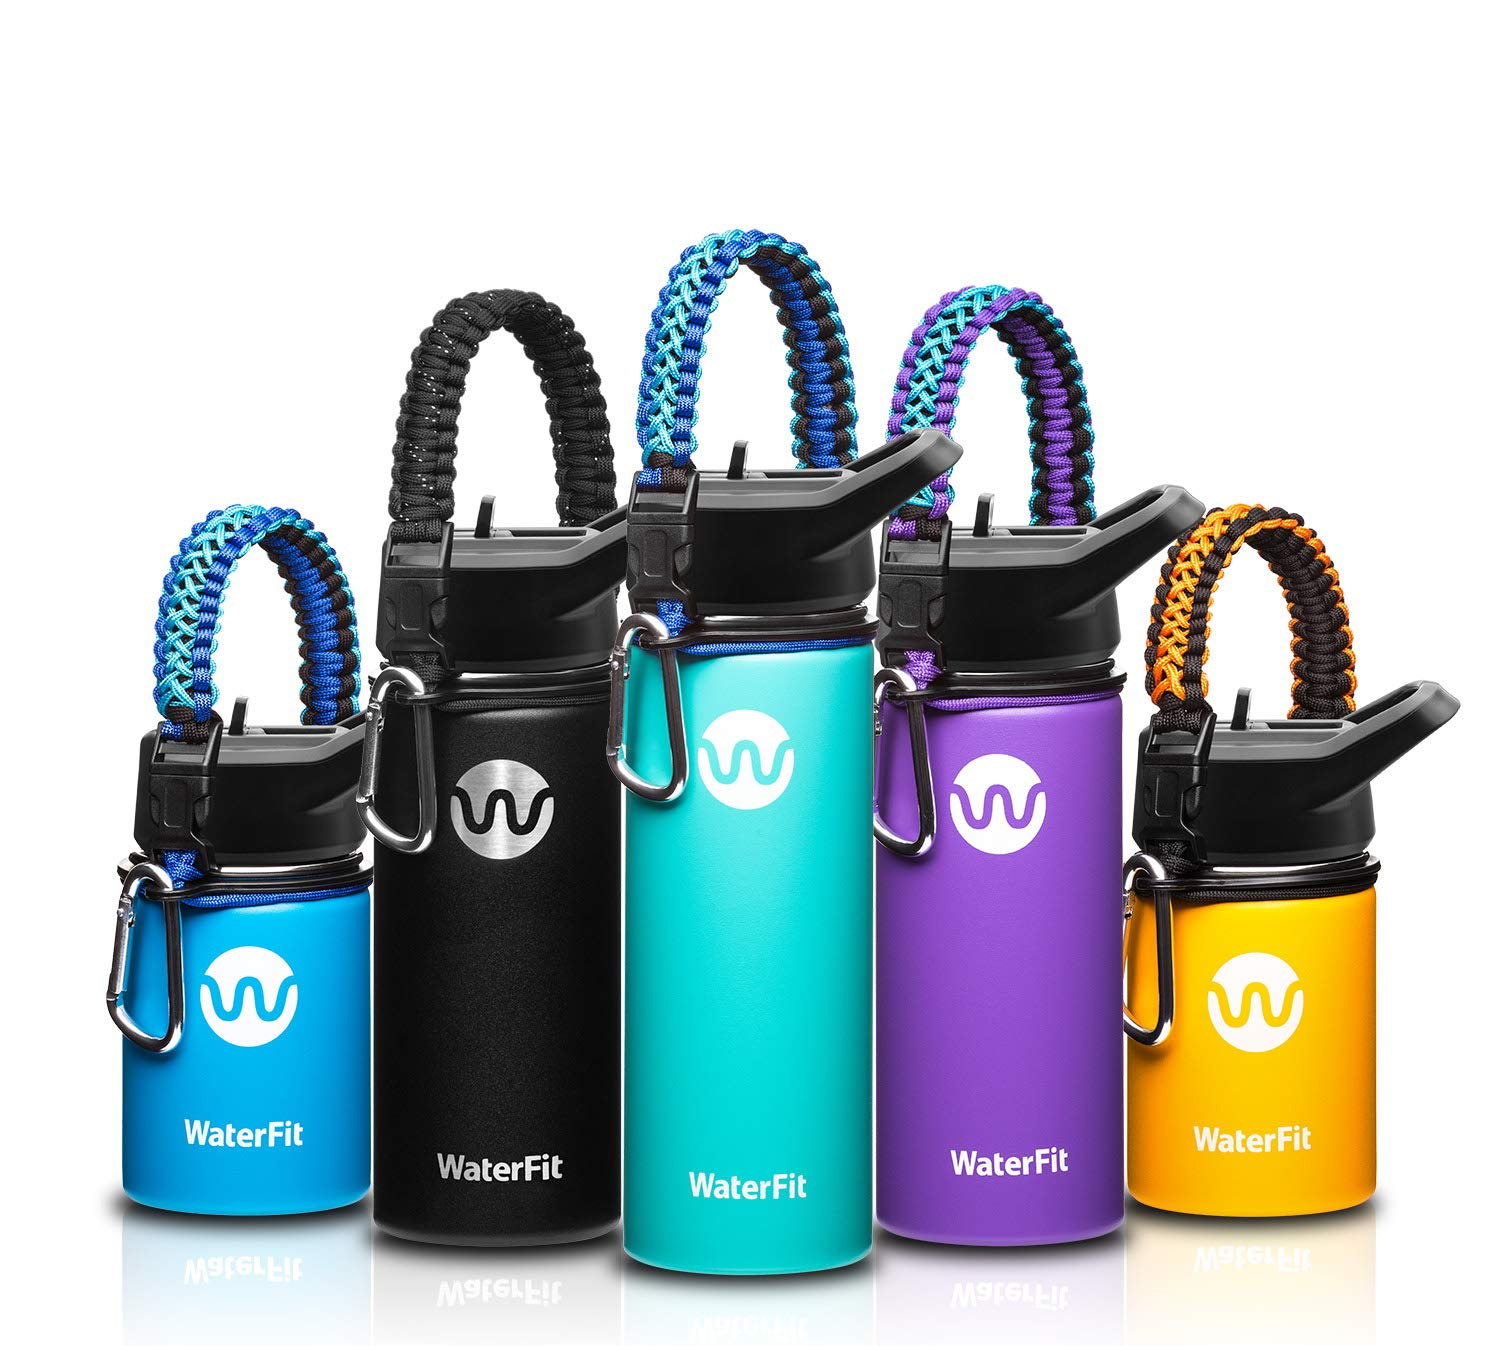 Double Wall Stainless Steel Leak Proof BPA Free Sports Wide Mouth Water Bottle WaterFit Vacuum Insulated Water Bottle 12oz 16oz 20oz -5 Colors with Paracord Handle Travel Straw Lid